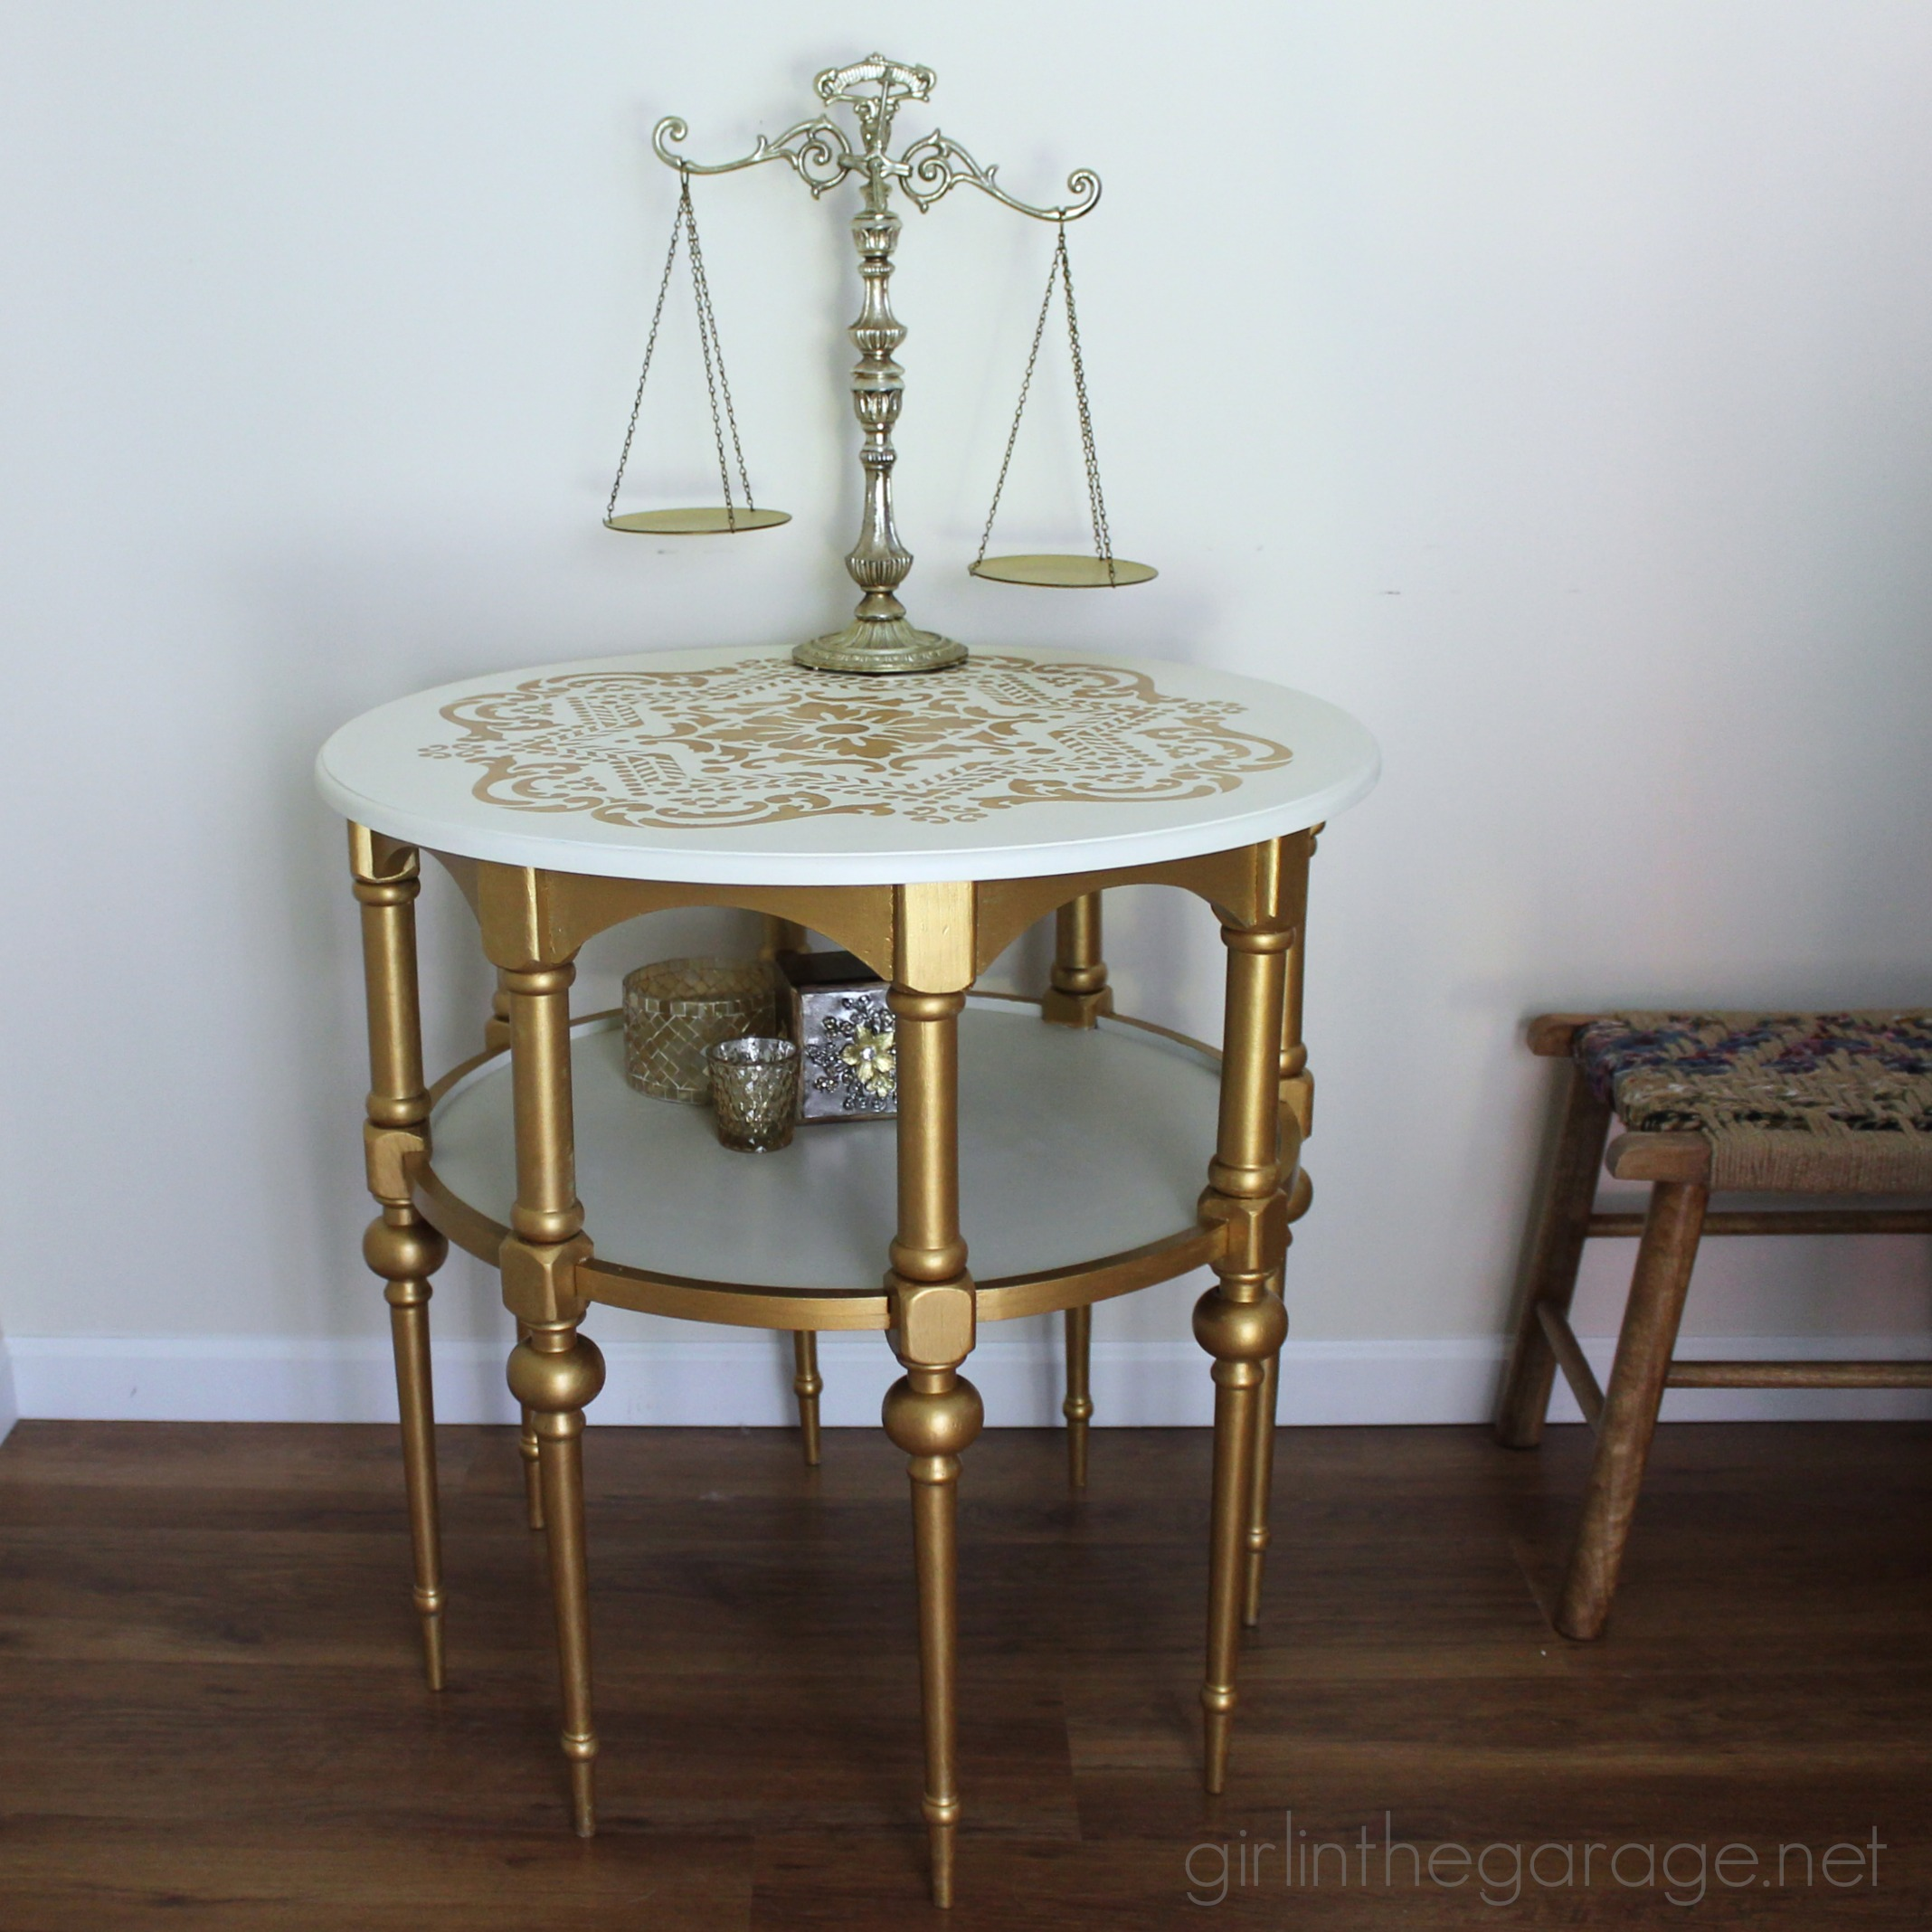 painted furniture makeover gold metallic. A Stunning Stenciled Table Makeover In Metallic Gold And White For Themed Furniture Day. Painted Y